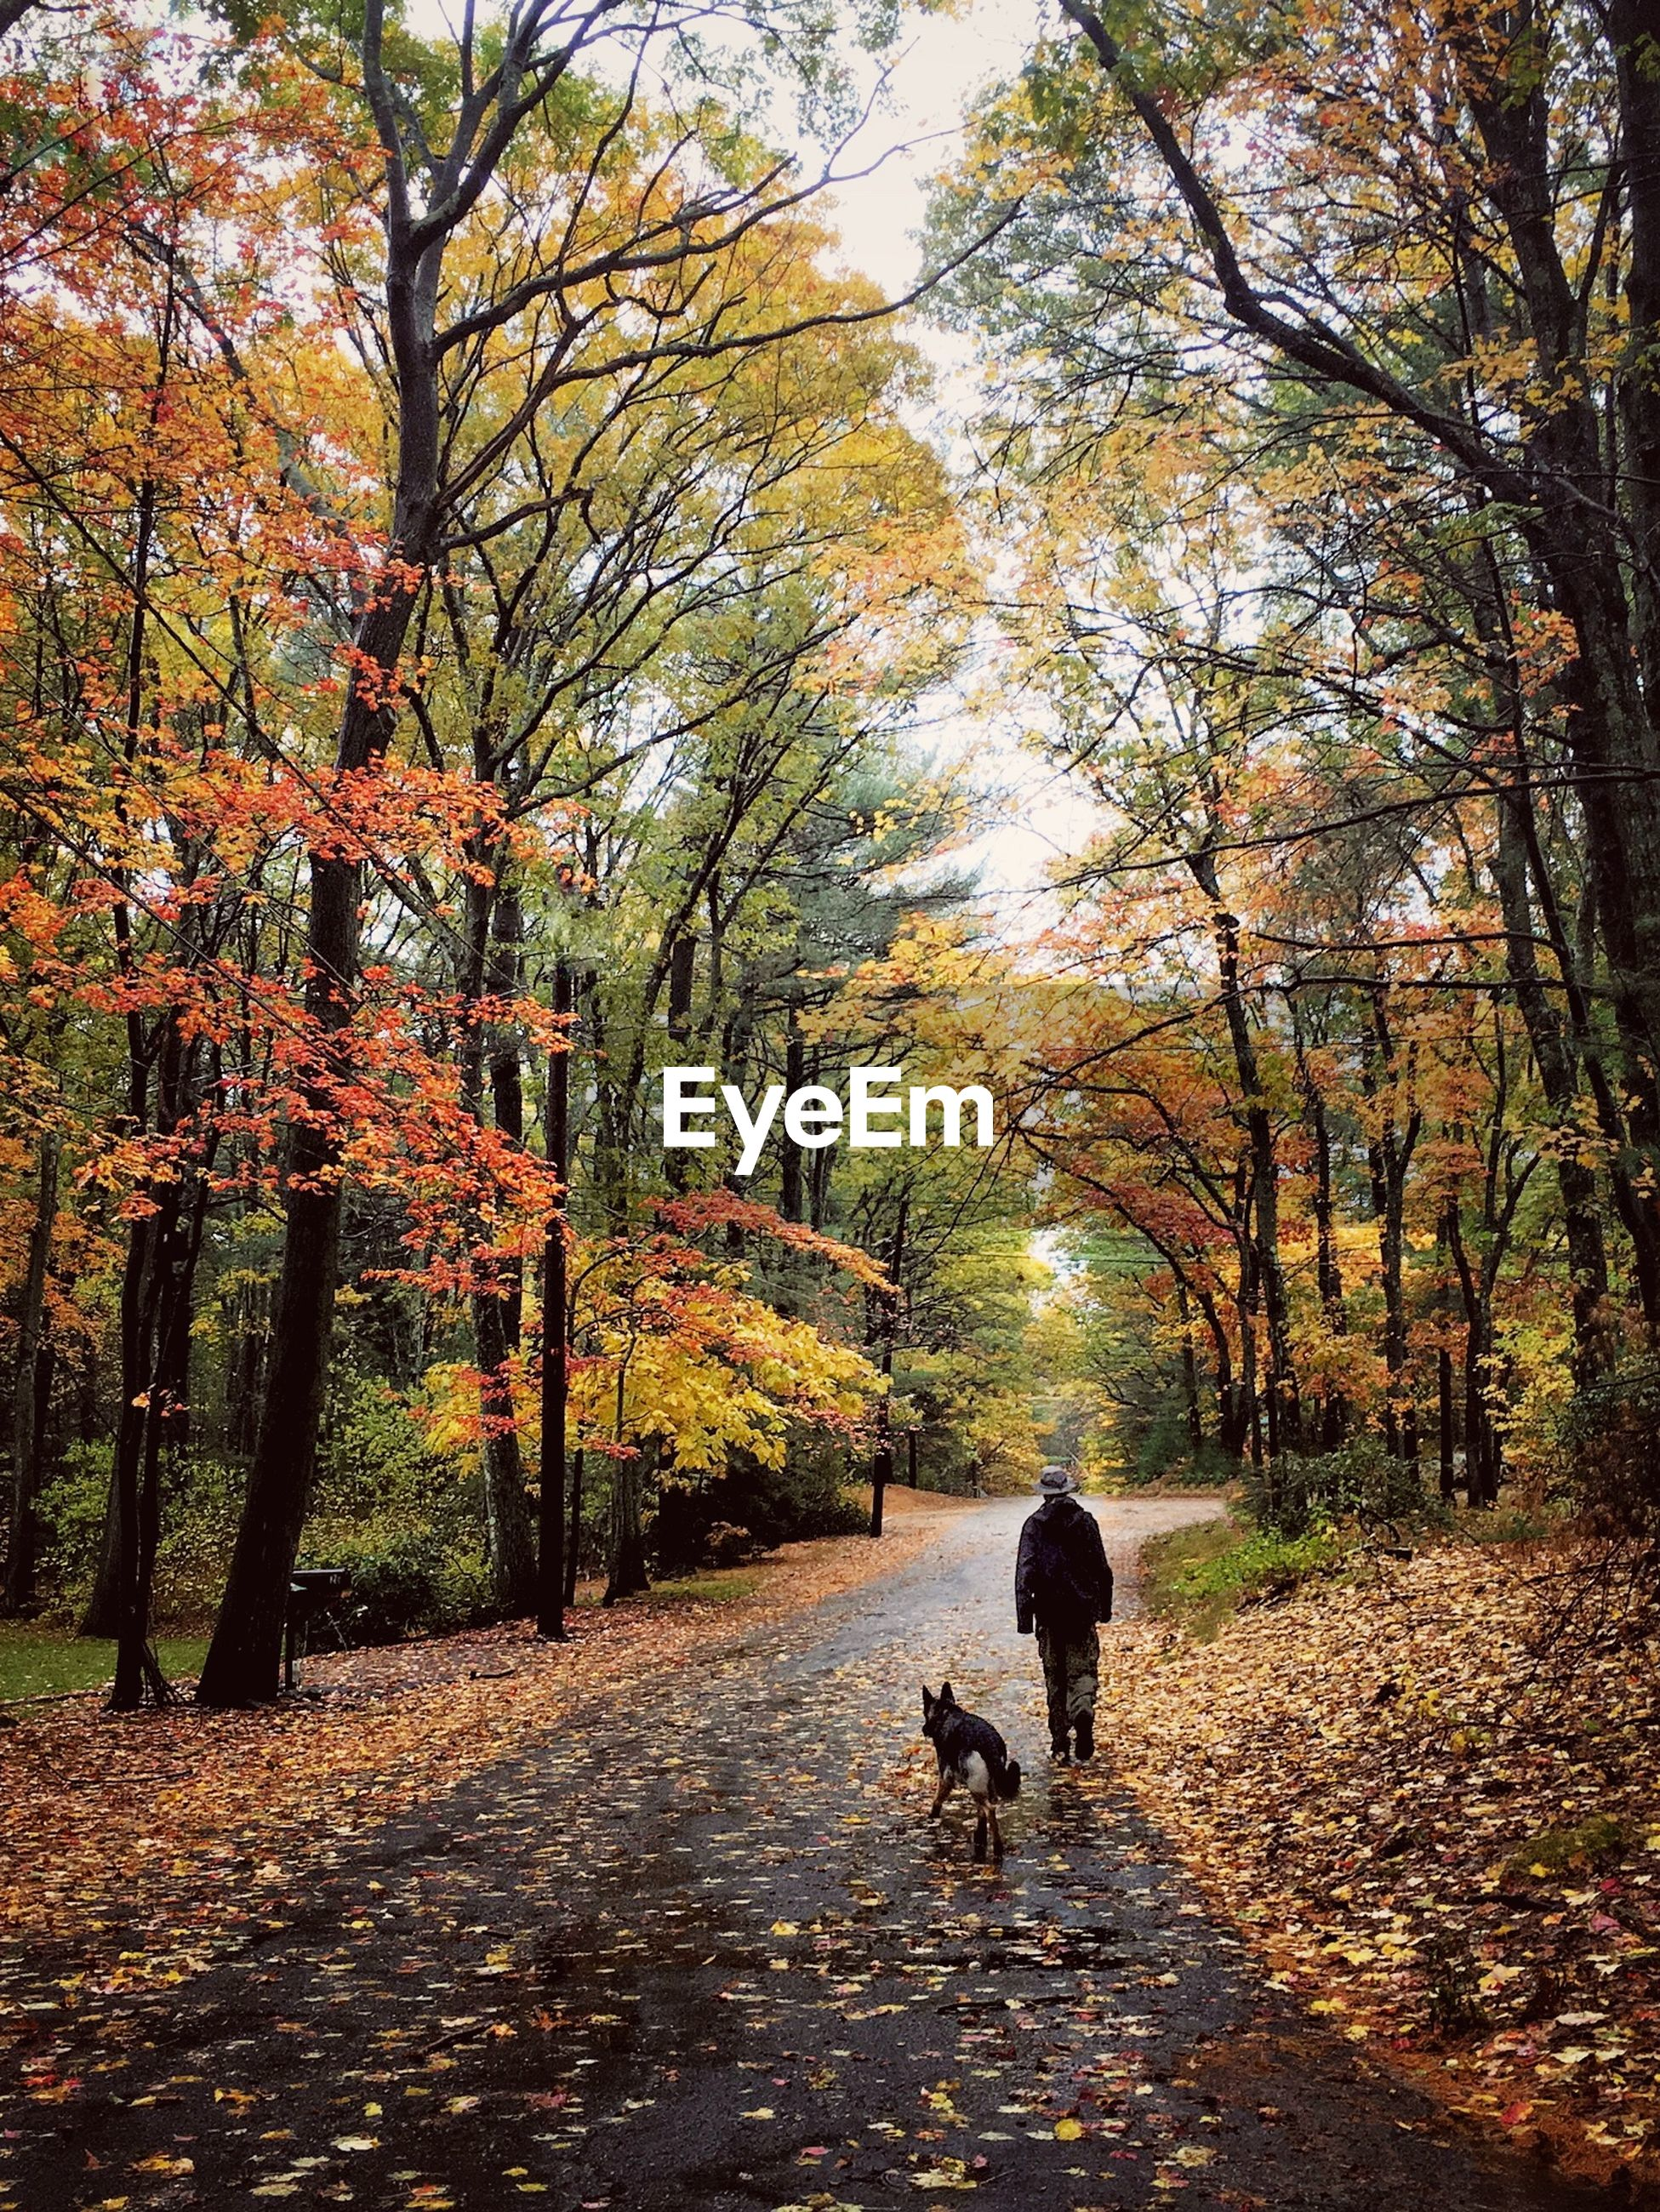 Man and dog walking amidst trees during autumn